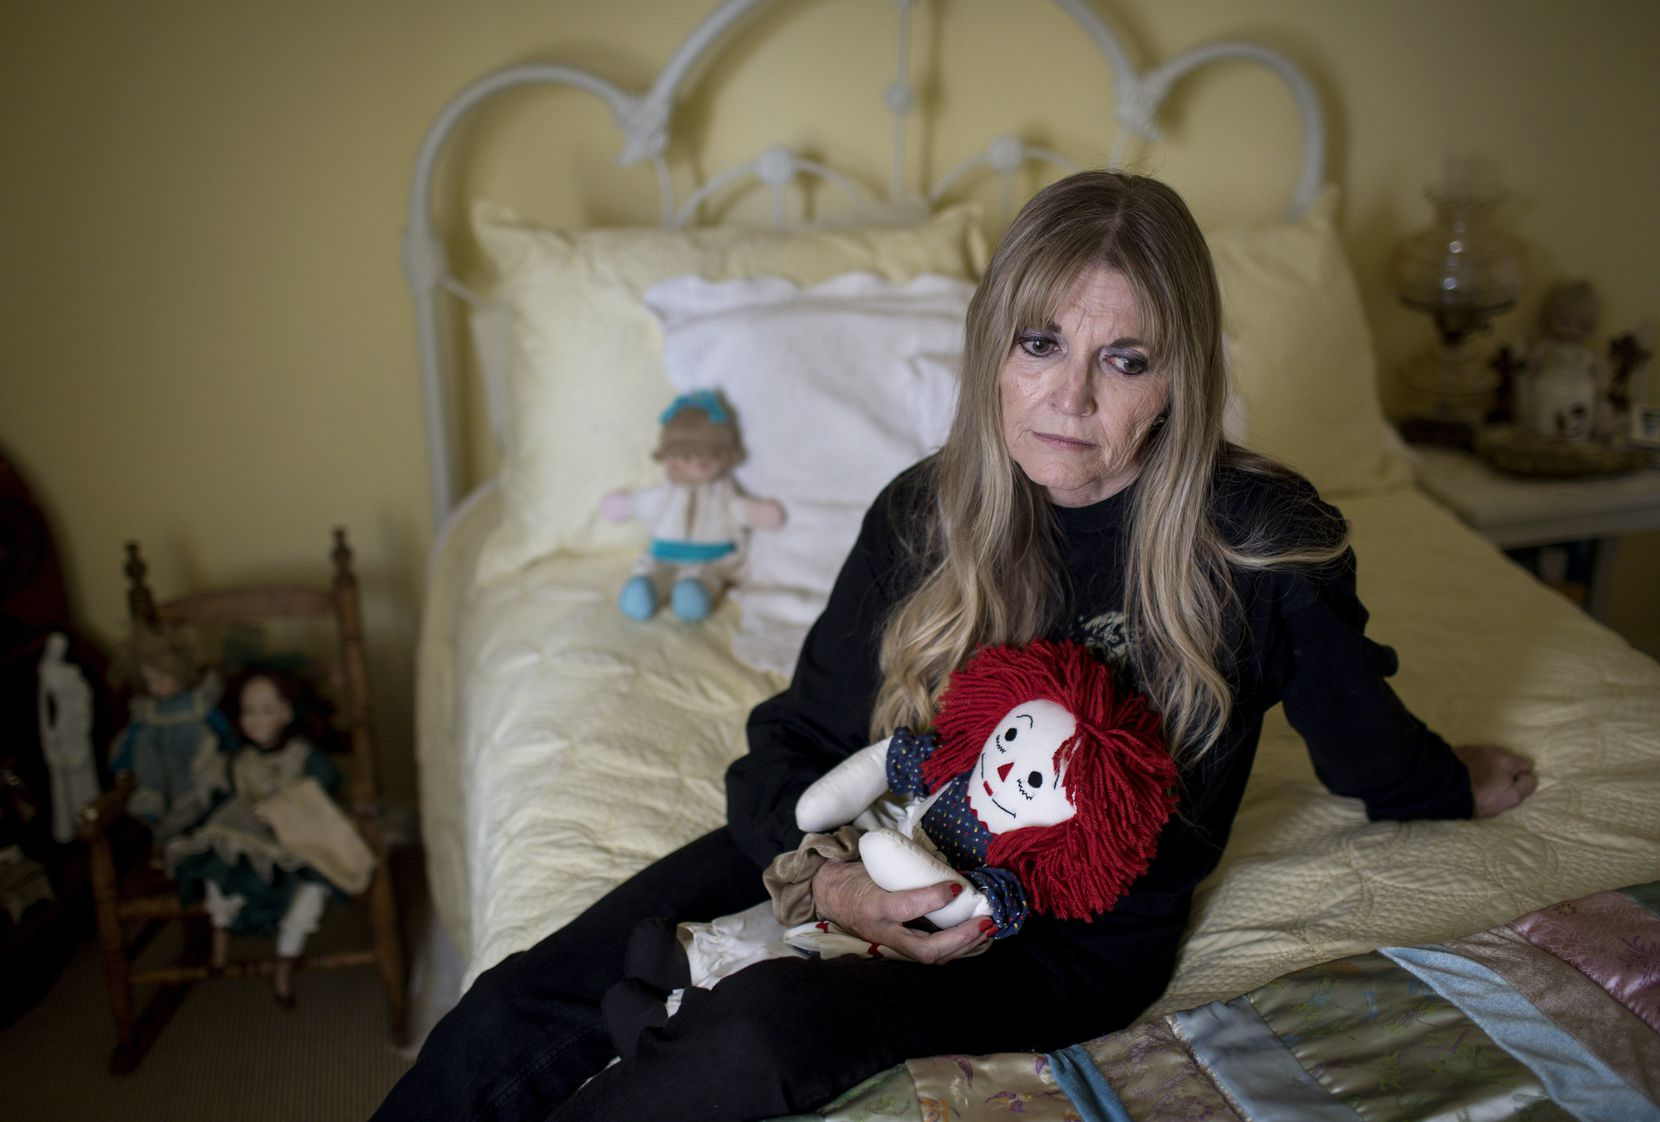 """Gwen Casados sits in her daughter's room in Houston. Her daughter, Heather Schneider, was sexually abused inside Second Baptist Church in Houston in 1994 and later died of a drug overdose. Heather Schneider was 14 when she was molested in a choir room at Houston's Second Baptist Church, according to criminal and civil court records. Her mother, Gwen Casados, said church leaders waited months to fire the attacker, who later pleaded no contest. In response to her lawsuit, church leaders also denied responsibility. Schneider slit her wrists the day after that attack in 1994, Casados said. She survived, but she died 14 years later from a drug overdose that her mother blames on the trauma. """"I never got her back,"""" Casados said."""